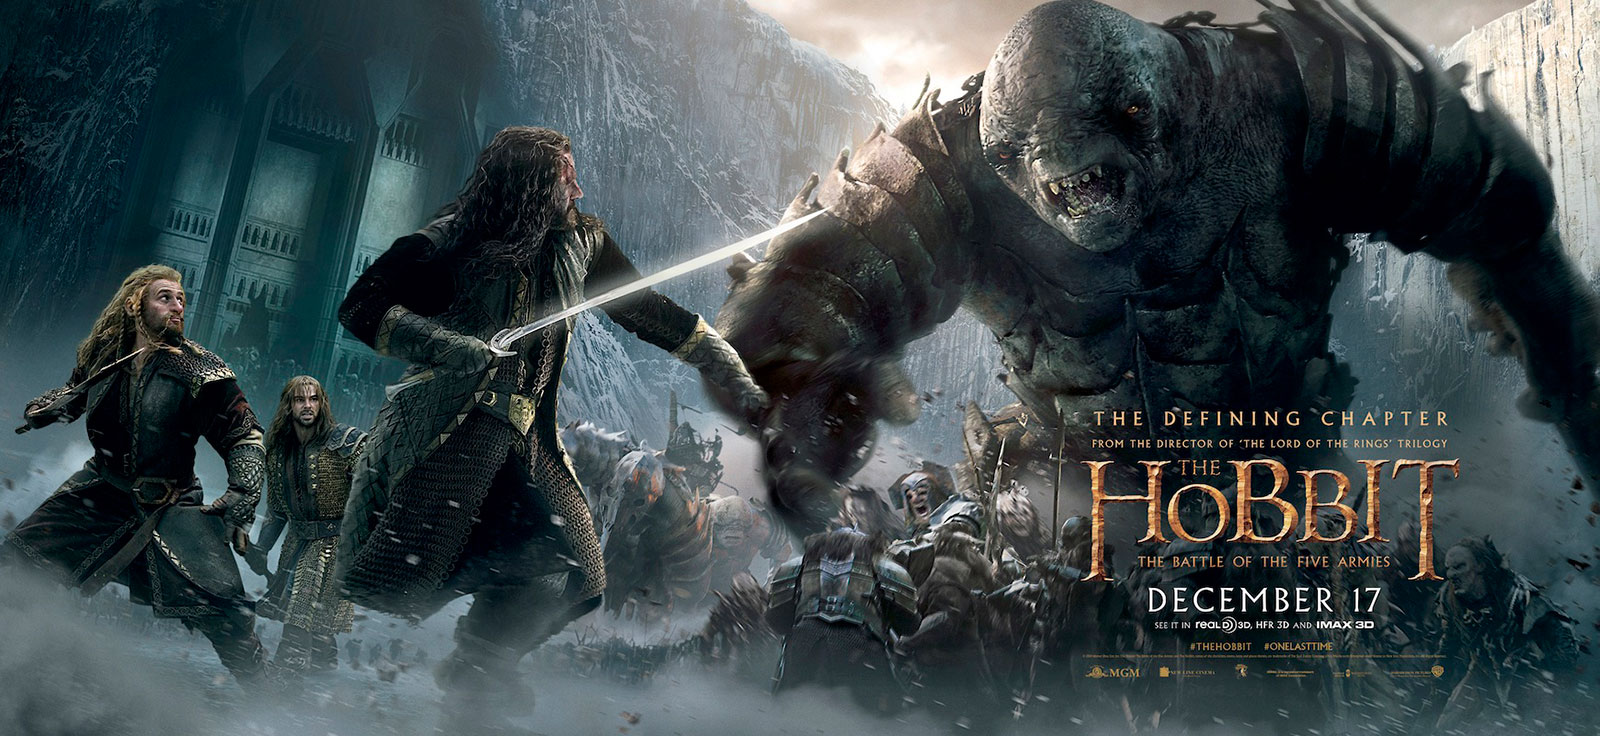 of the Five Armies 2014 Movie Smaug Desktop iPhone Wallpapers HD 1600x736